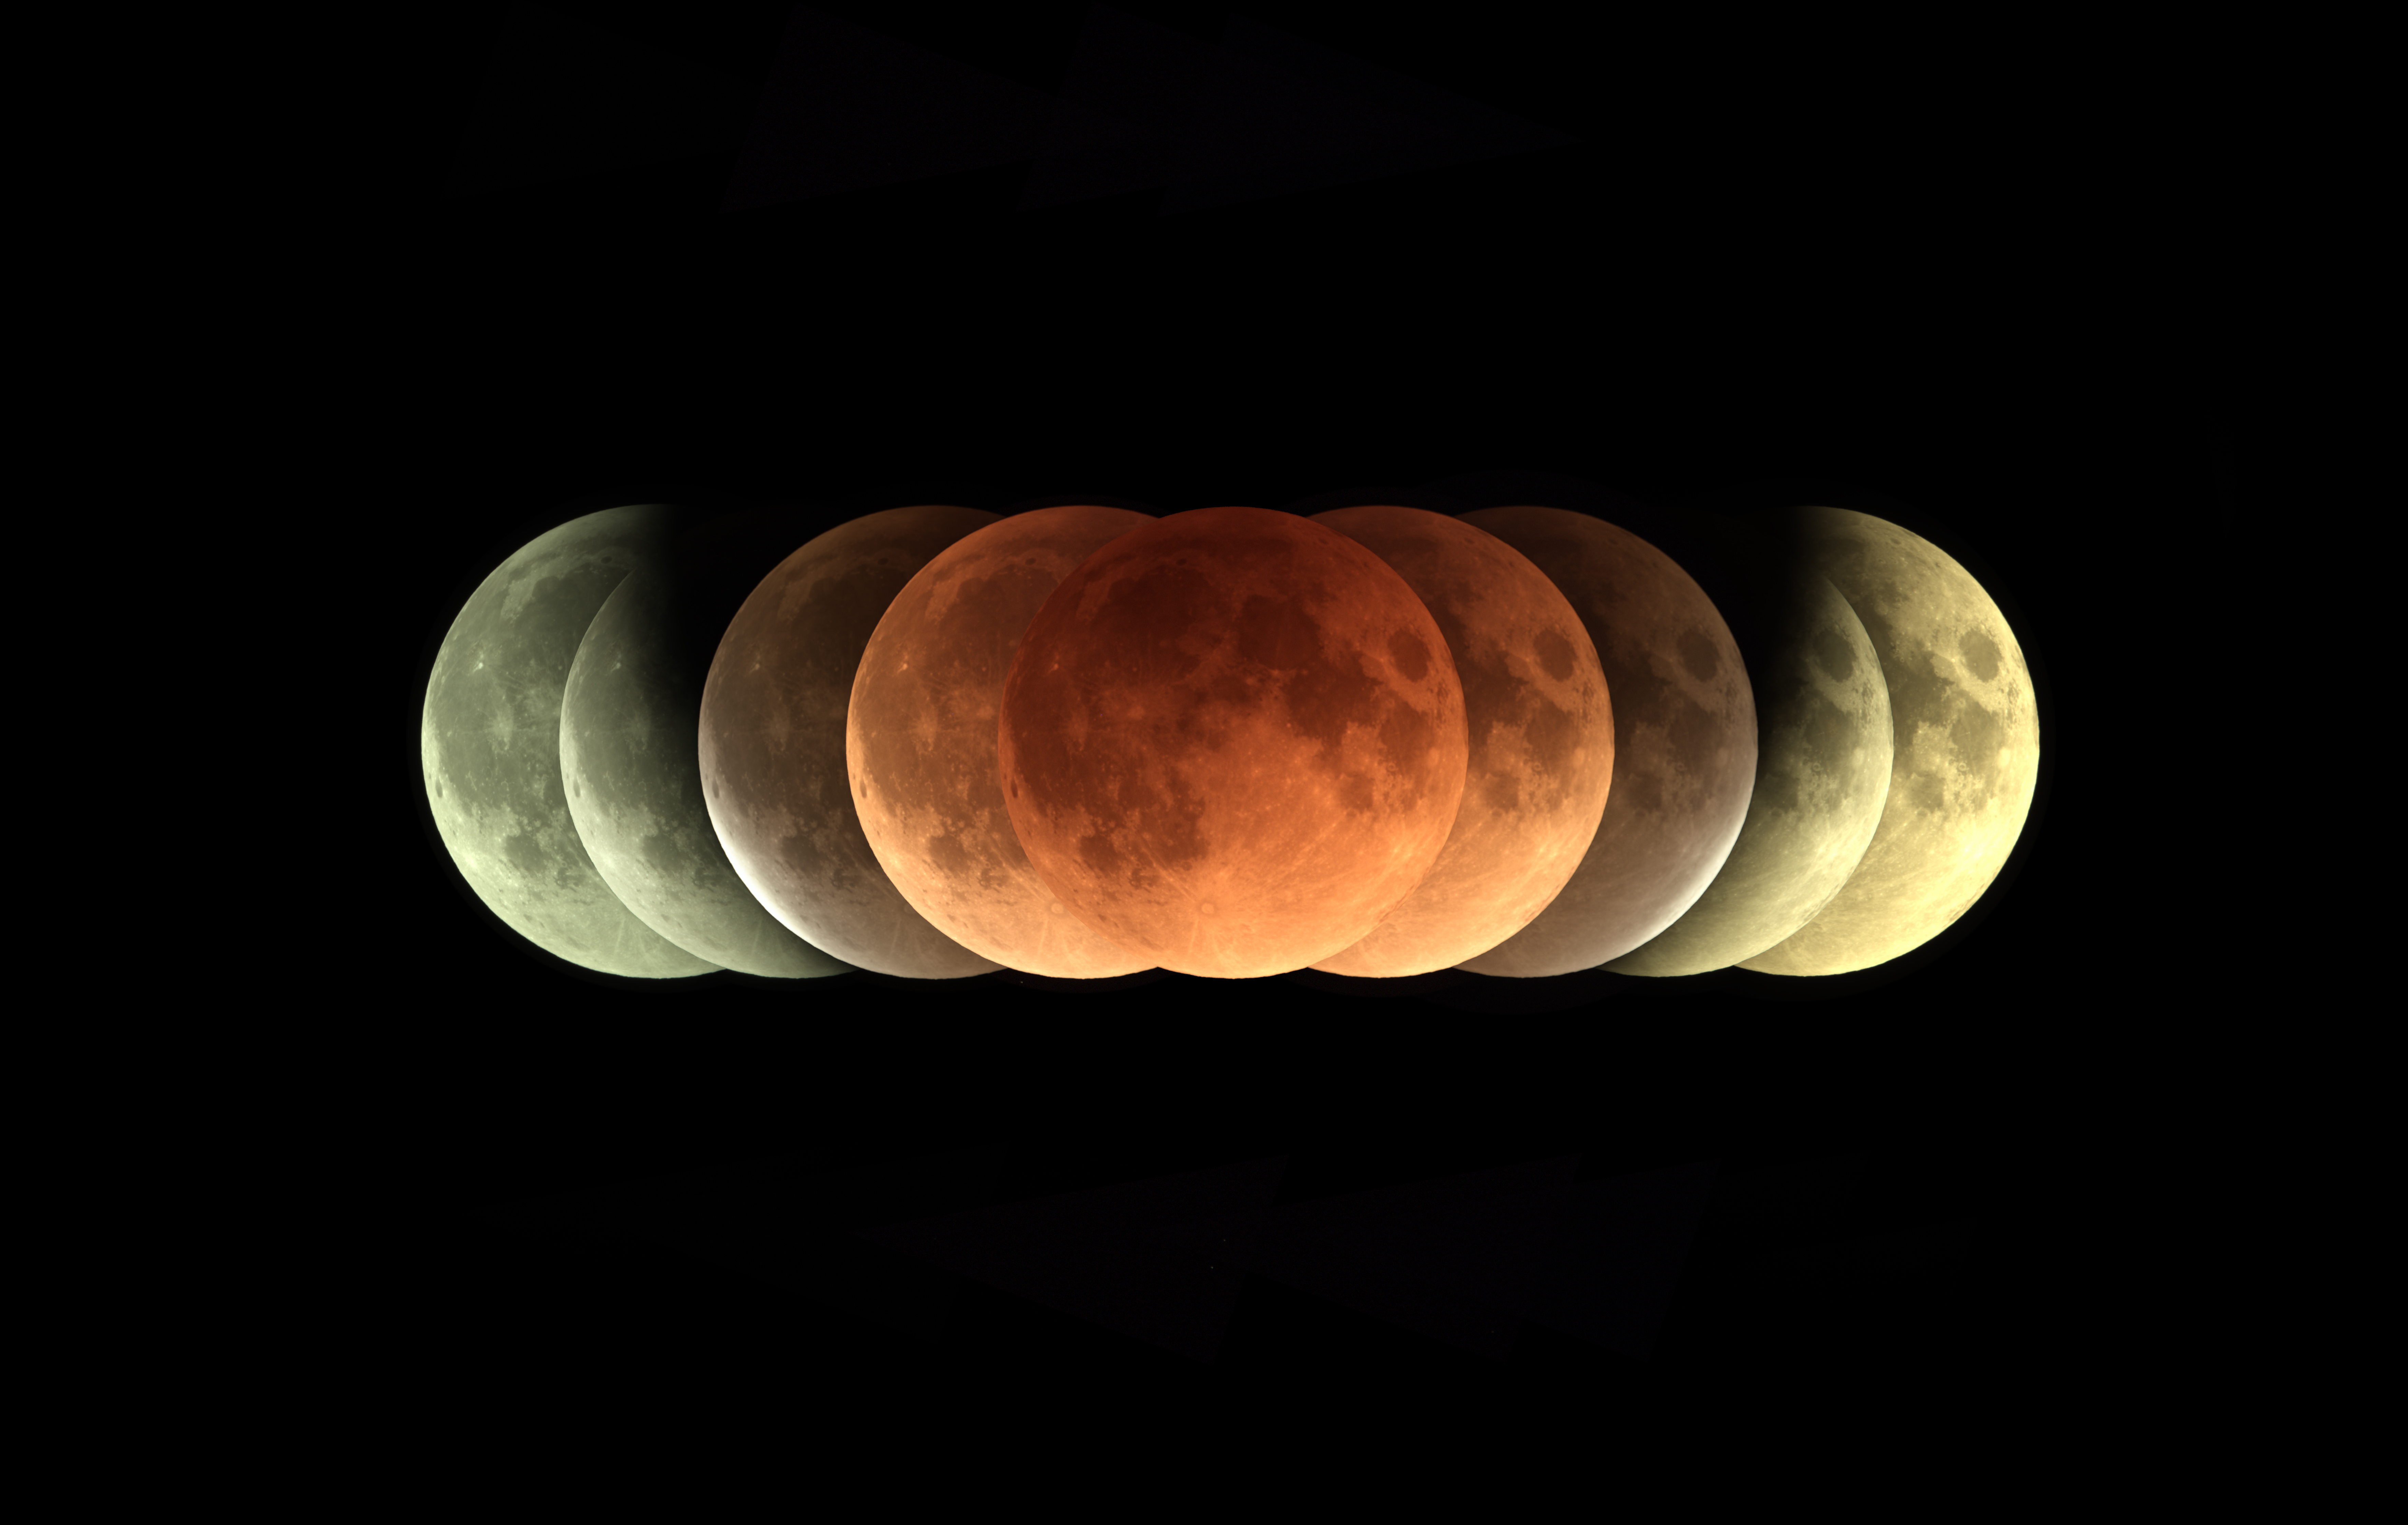 Total lunar eclipse photography: Shutterstock shooters share their secrets